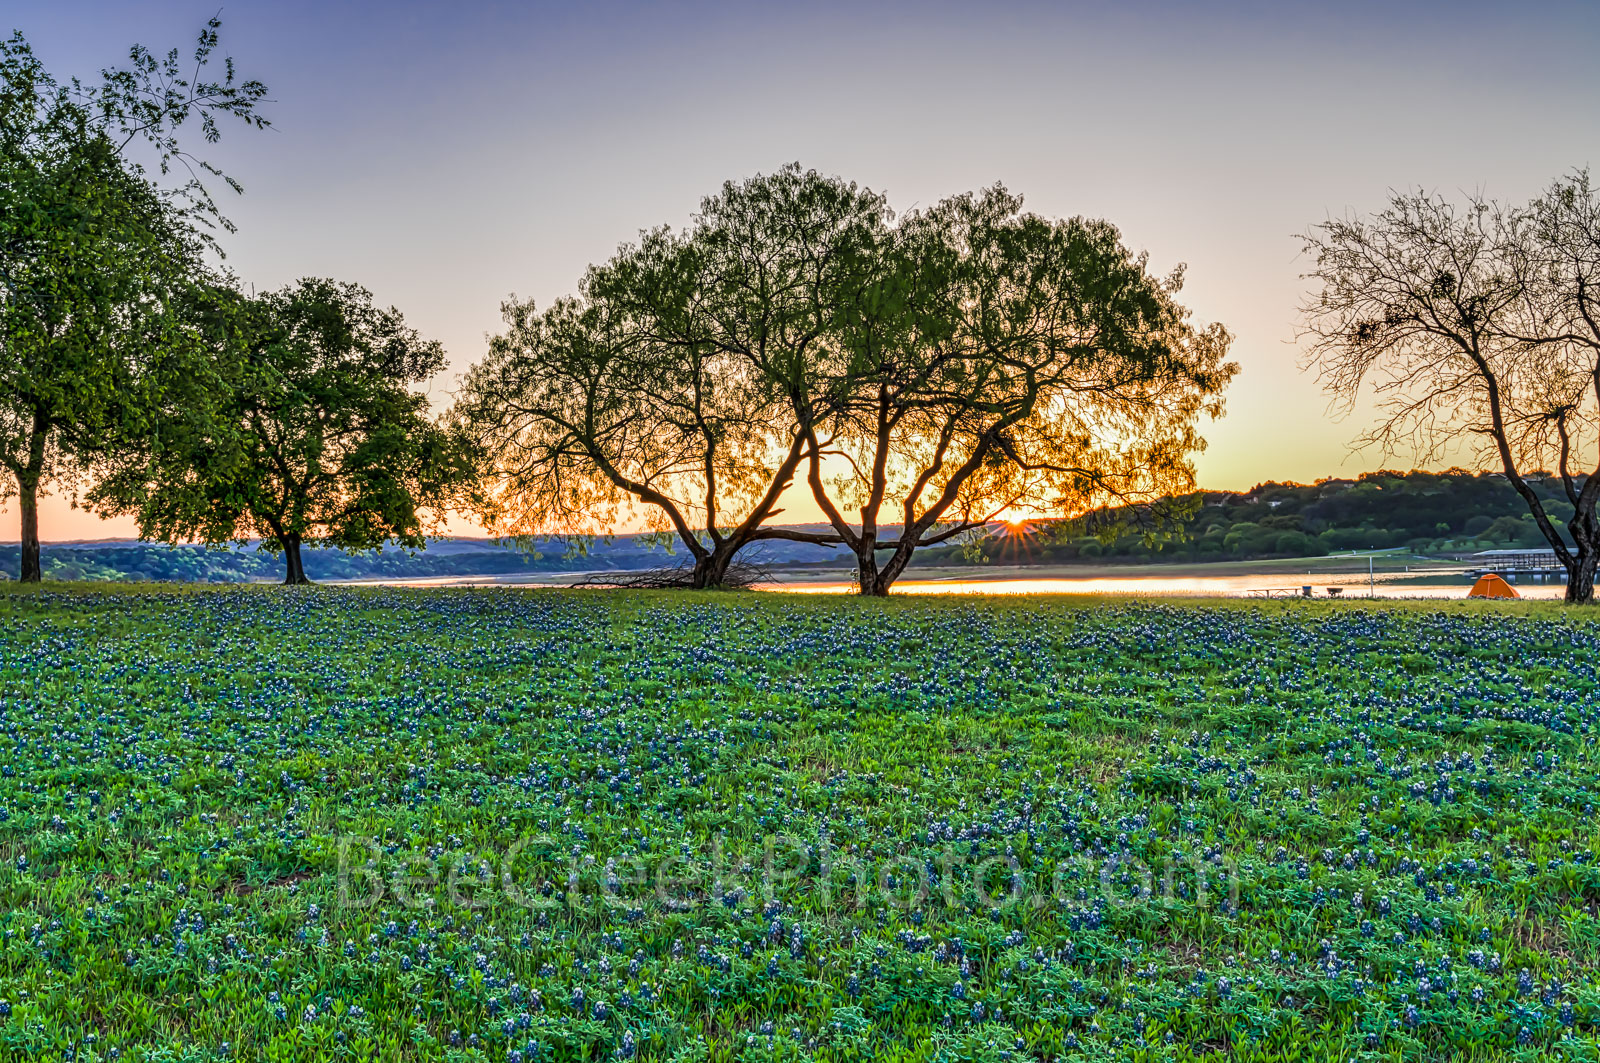 Bluebonnets, springtime, sunrise, Texas hill country, sun rays, field of bluebonnets, wildflower, water, river, tents, travel,lifestyle, Lady Bird, Highway Beautification Act,